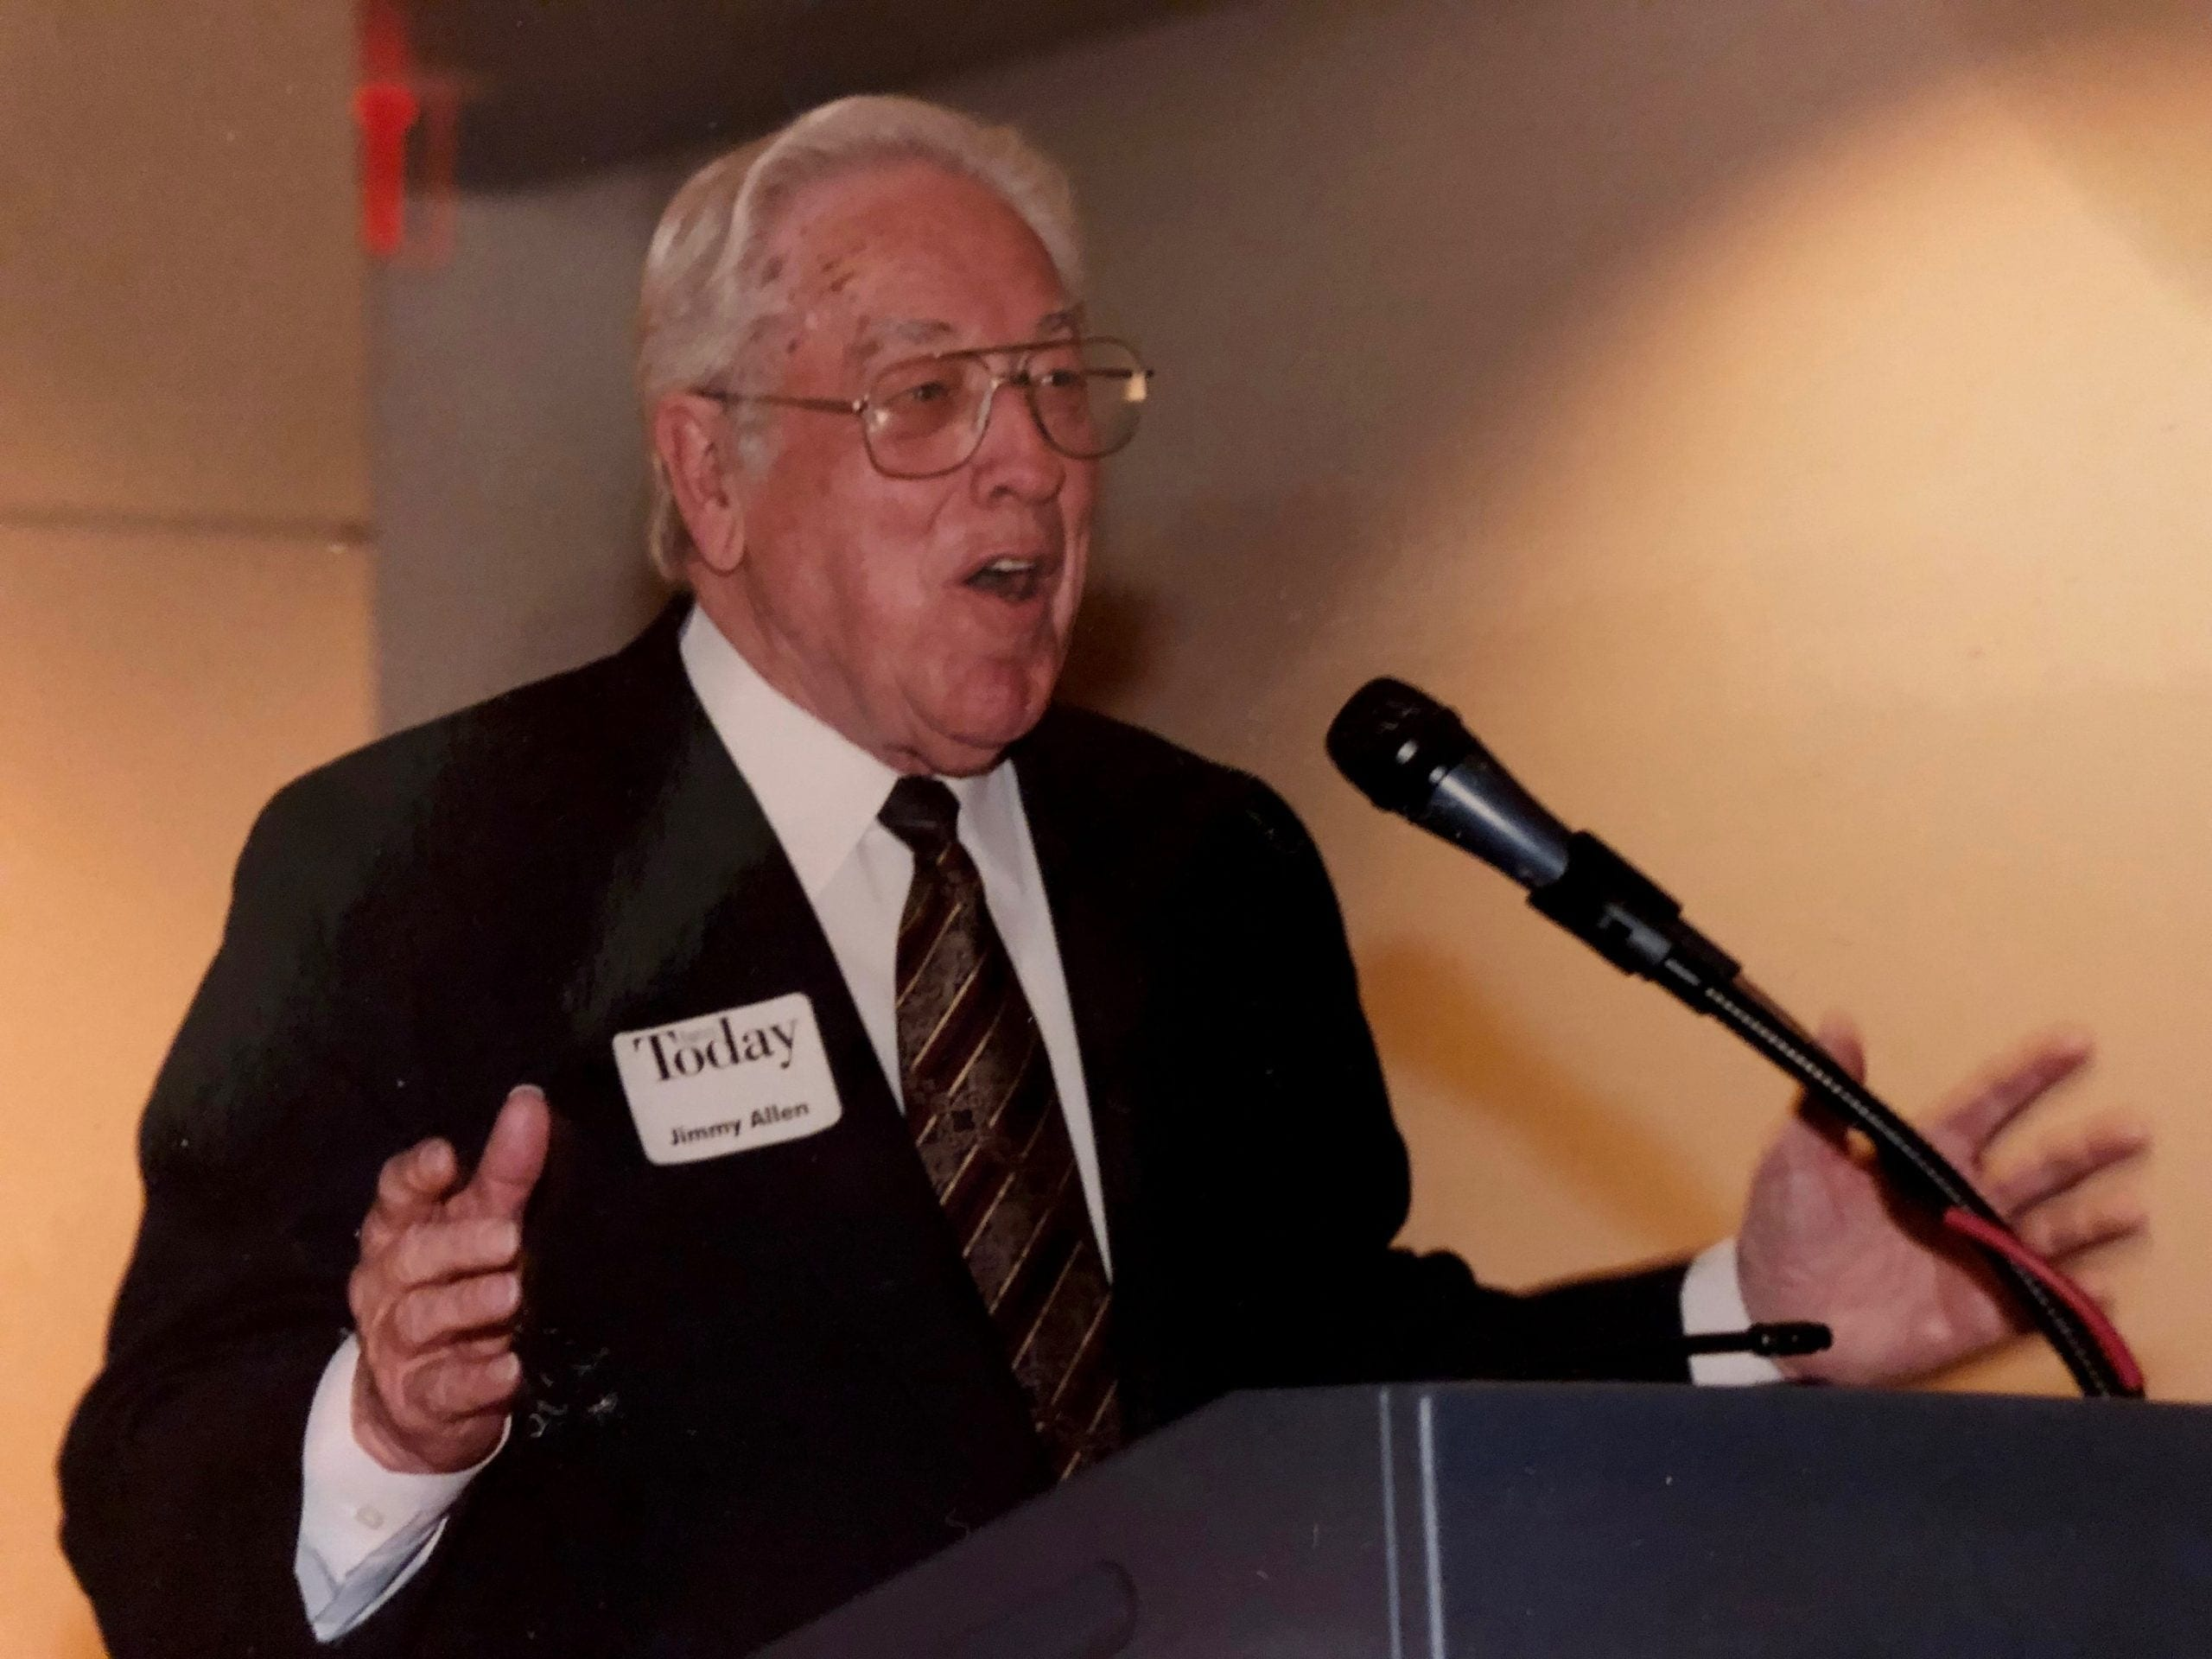 Jimmy R. Allen: 'Leadership with integrity'